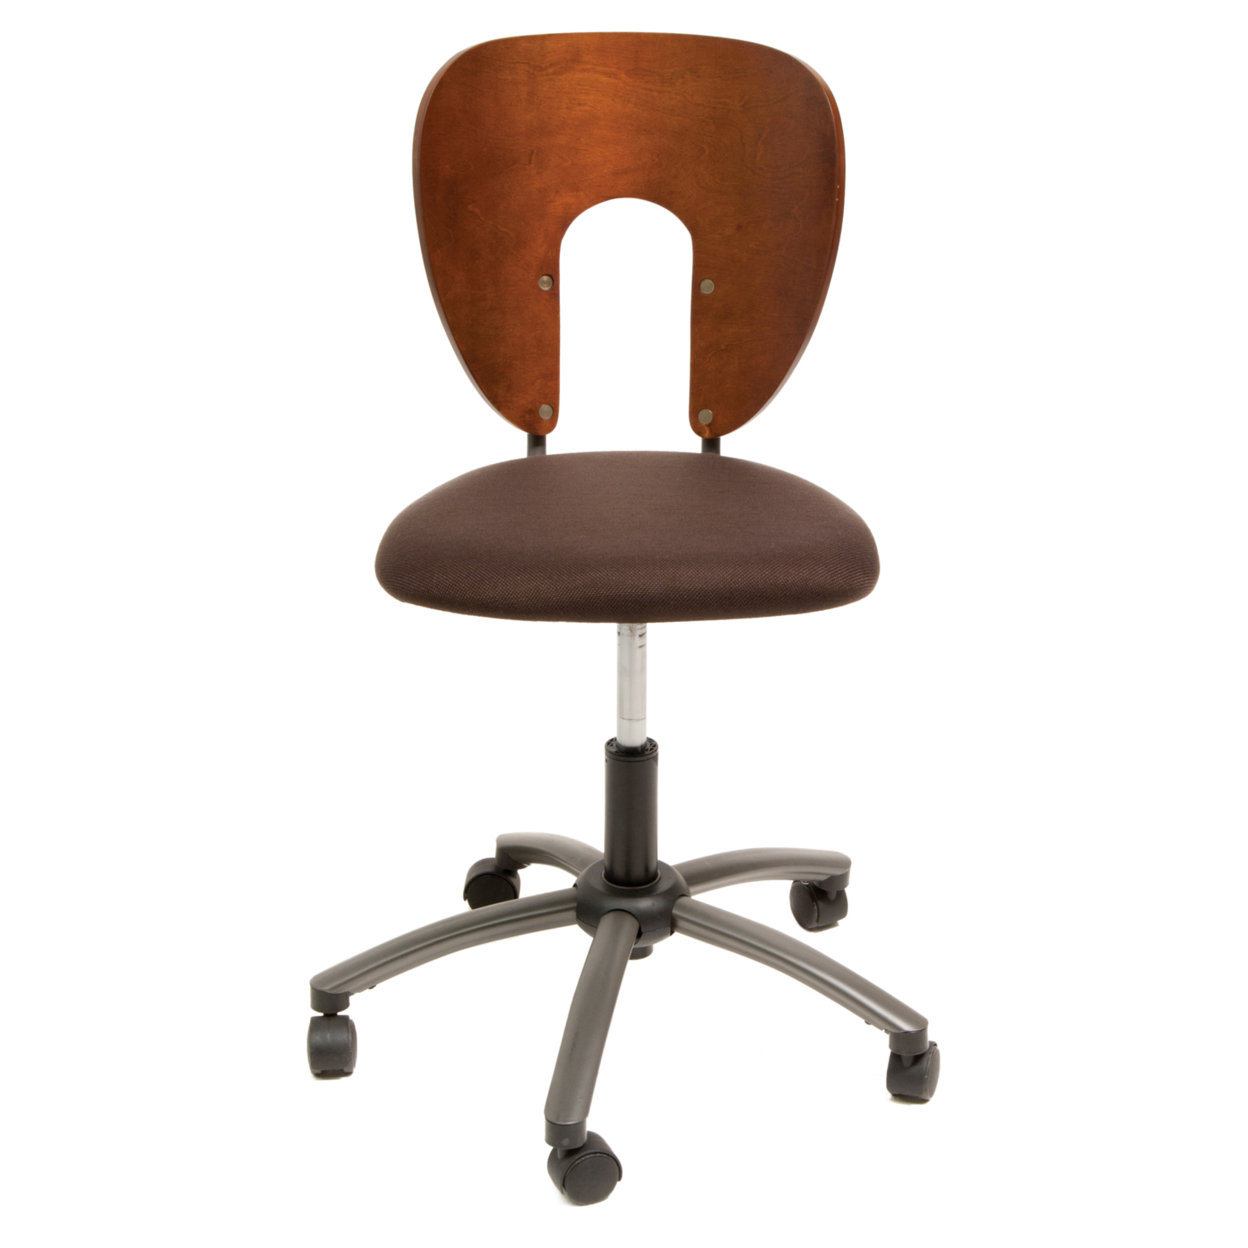 Offex Home Office Ponderosa Chair Sonoma - Brown